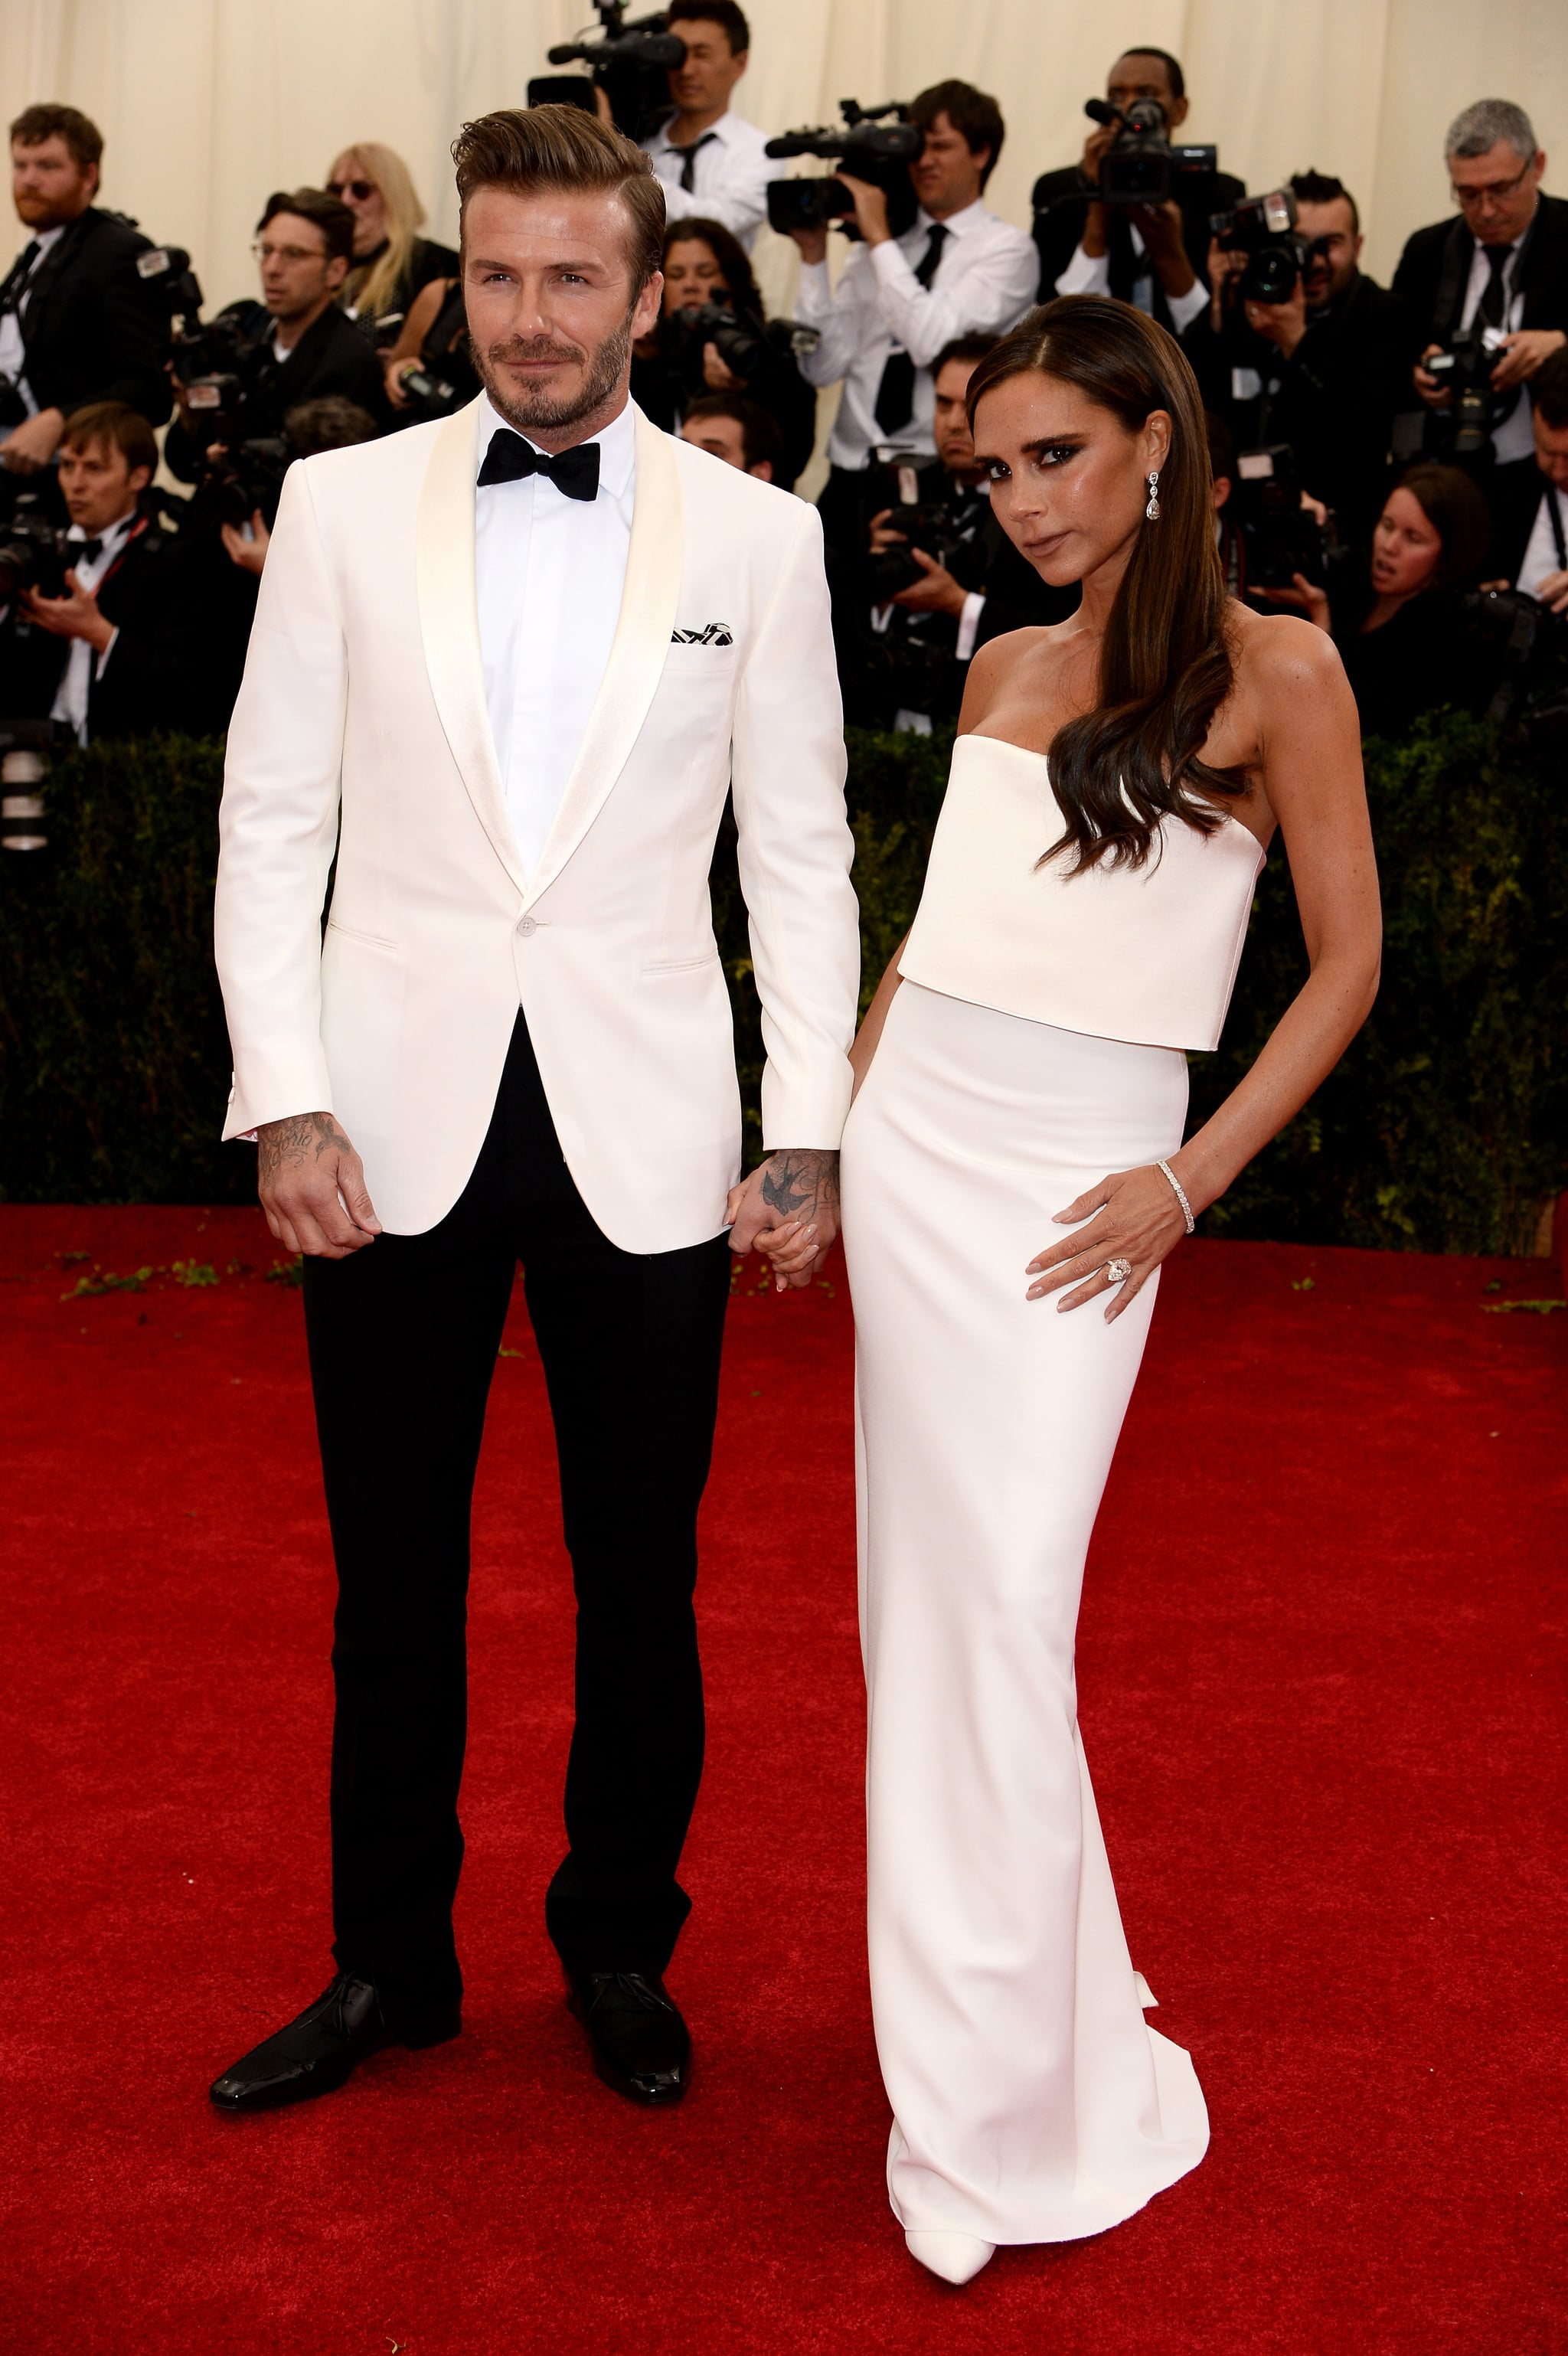 Victoria and David Beckham Are a Picture-Perfect Met Gala Couple